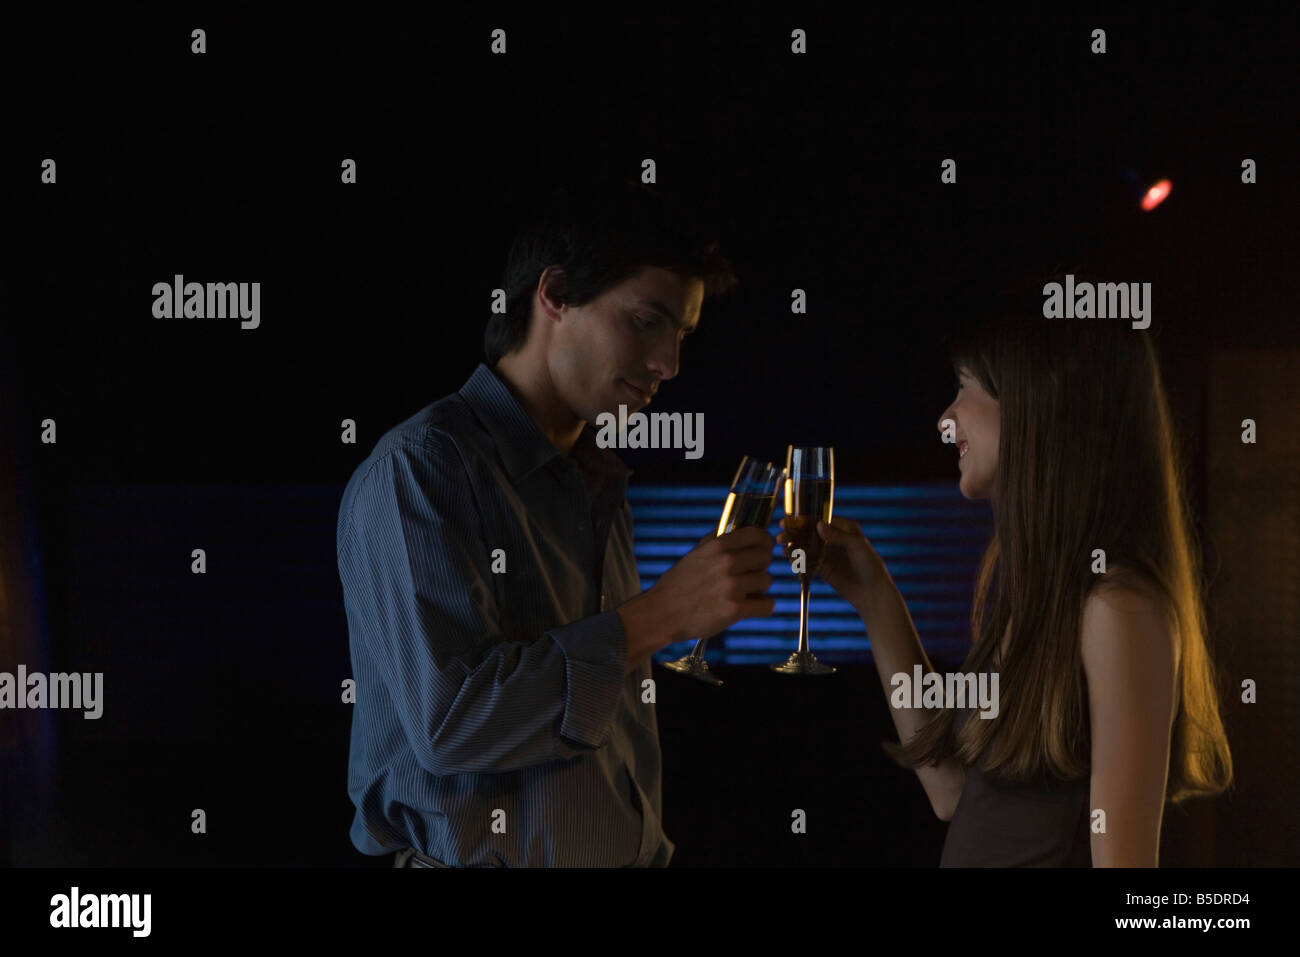 Couple clinking glasses in darkly lit room, smiling - Stock Image